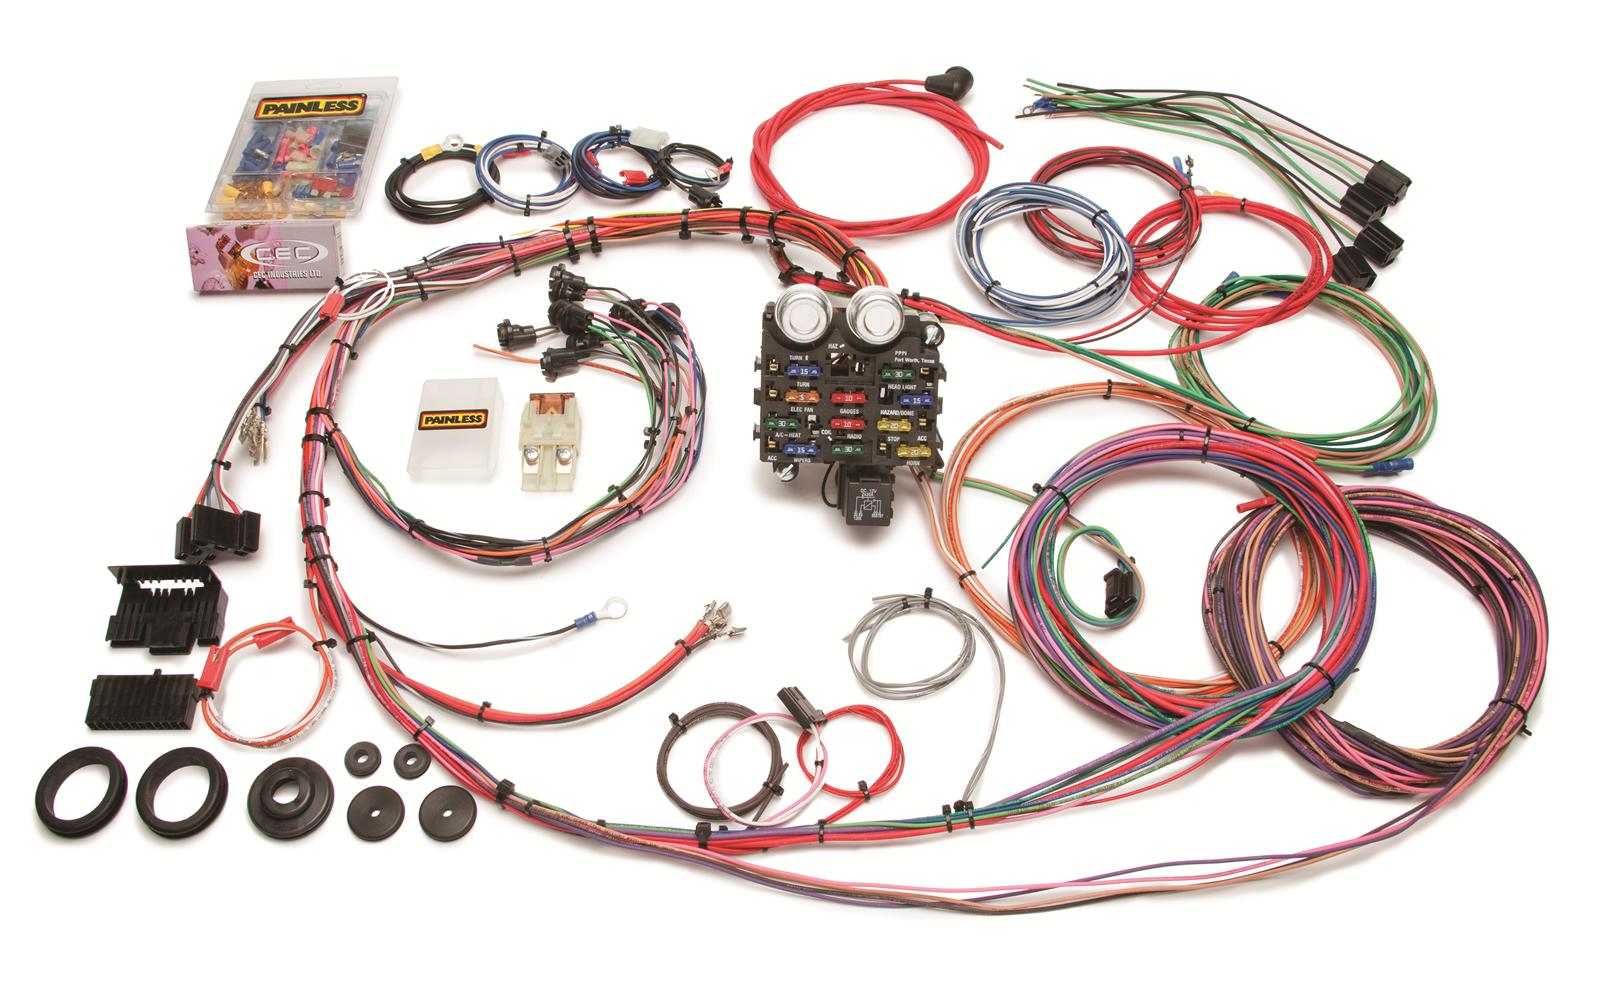 prf 10112_xl painless performance 19 circuit gmc chevy truck harnesses 10112 gm truck wiring harness at cita.asia